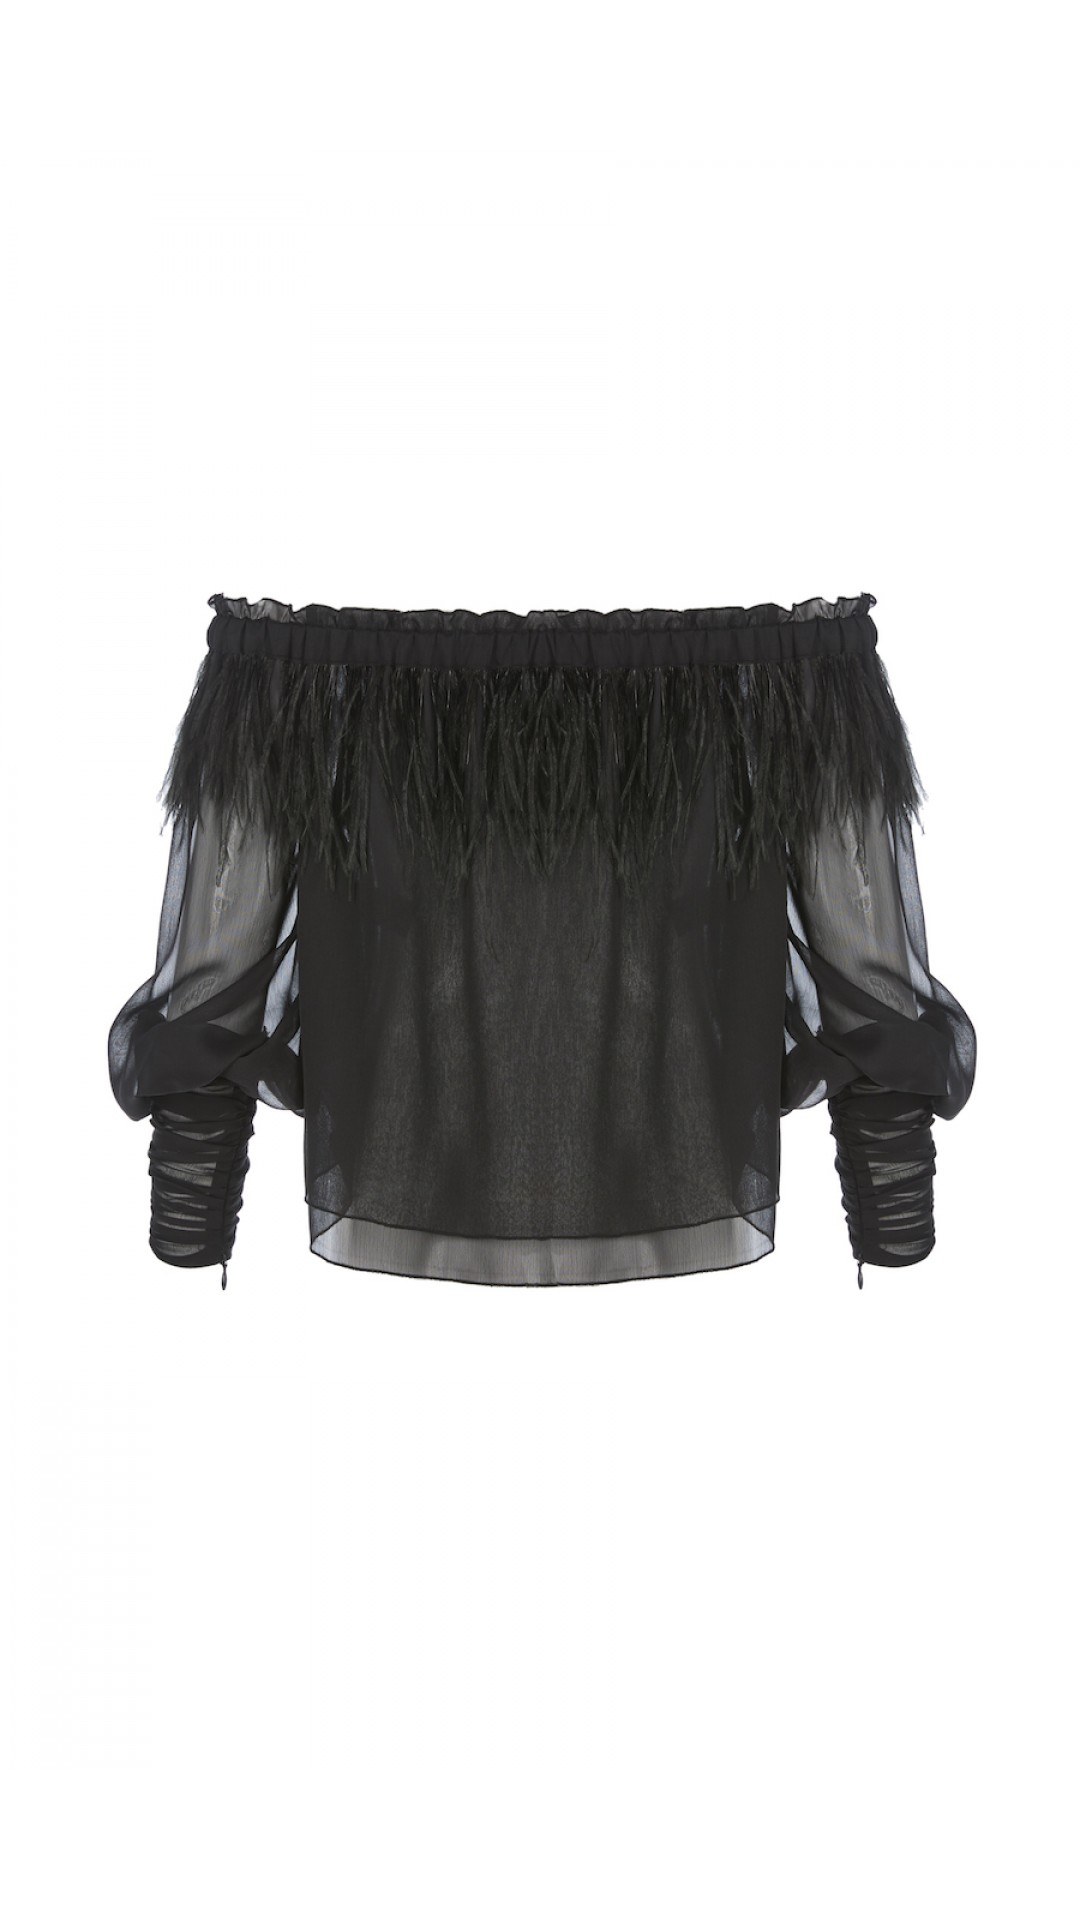 CHIFFON TOP WITH TULLE DETAILS